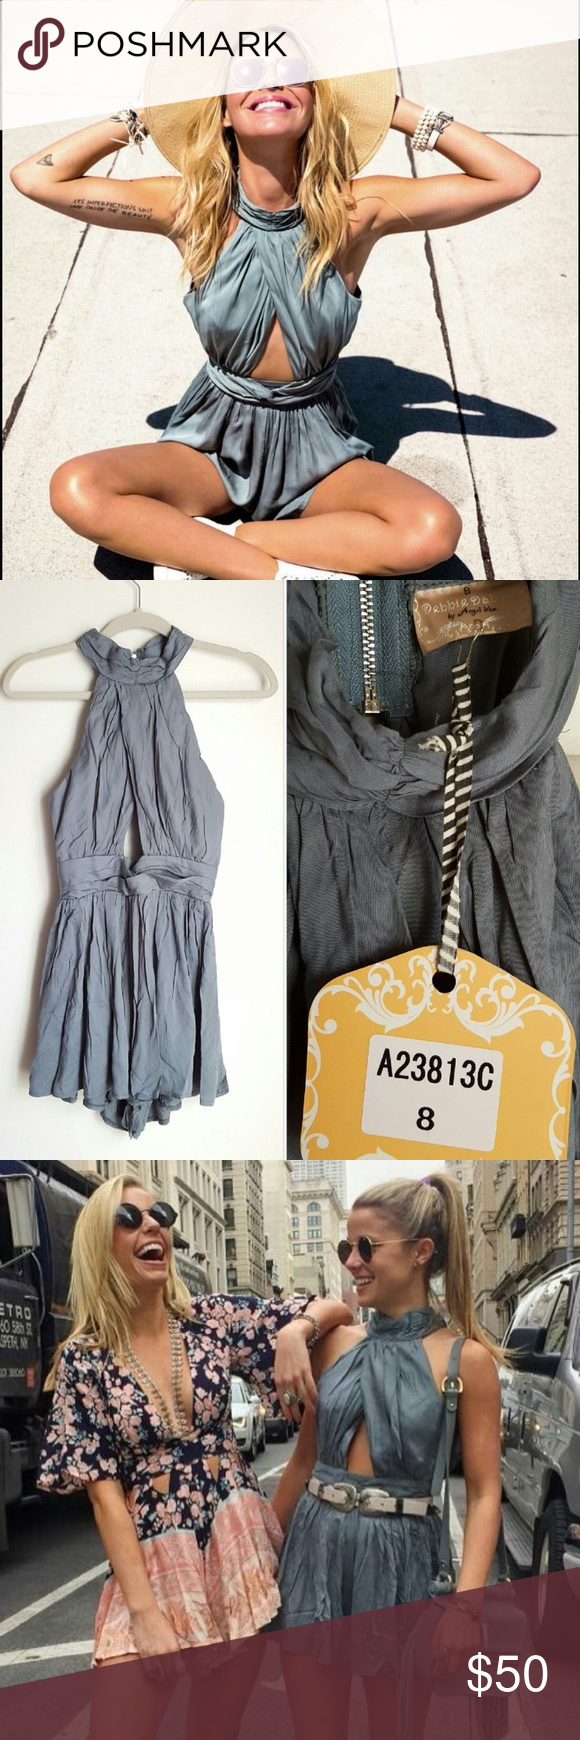 d2ce02b4008f LF Green Keyhole Romper Olive army green color -- can fit xs-M -- cute  cutout   zipper in back